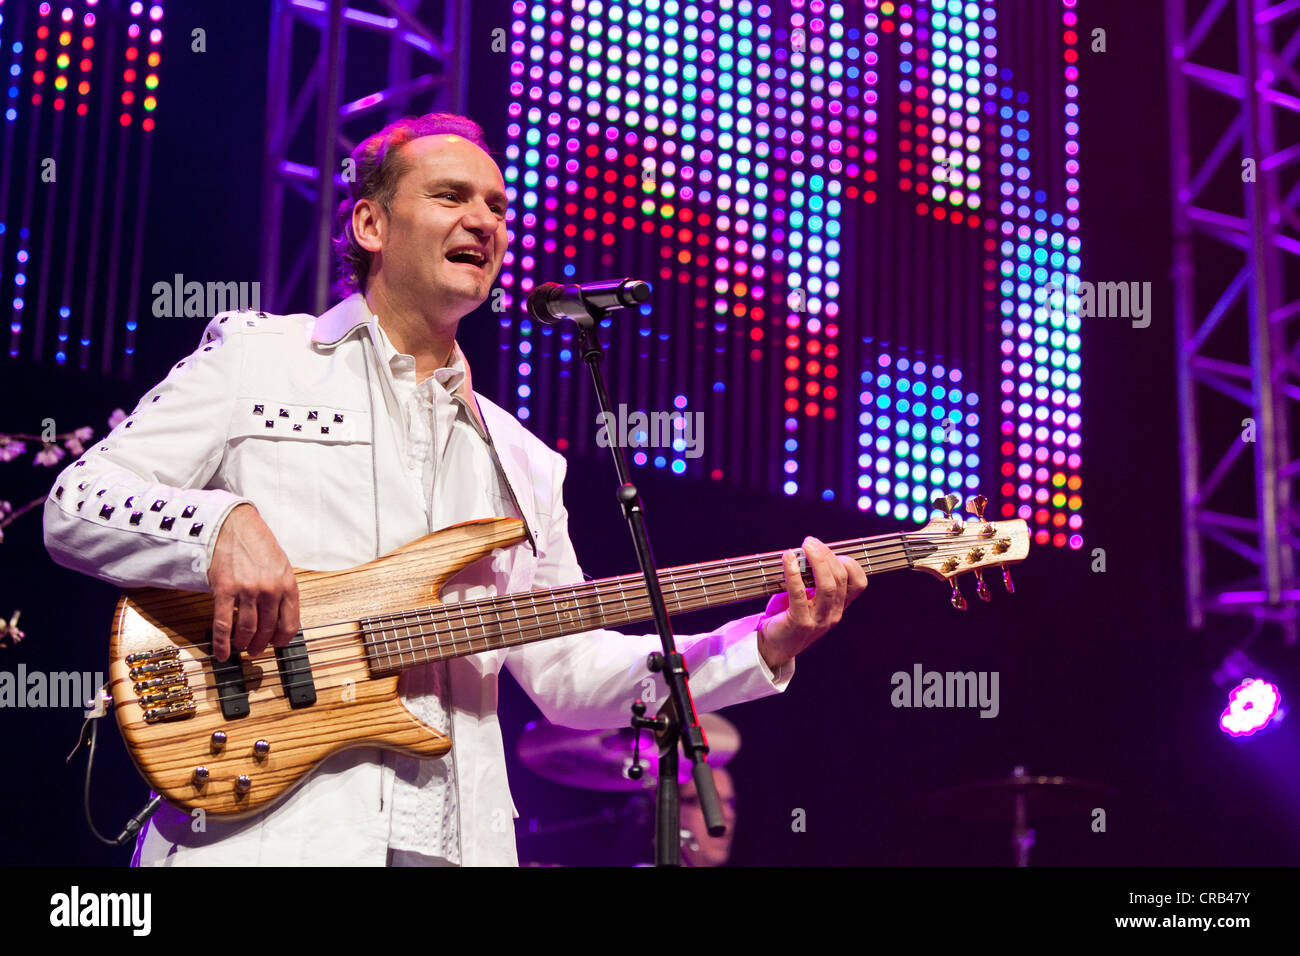 Harry Muster of the Austrian pop band 'Die Paldauer' performing live at the Schlager Nacht 2012, pop music - Stock Image